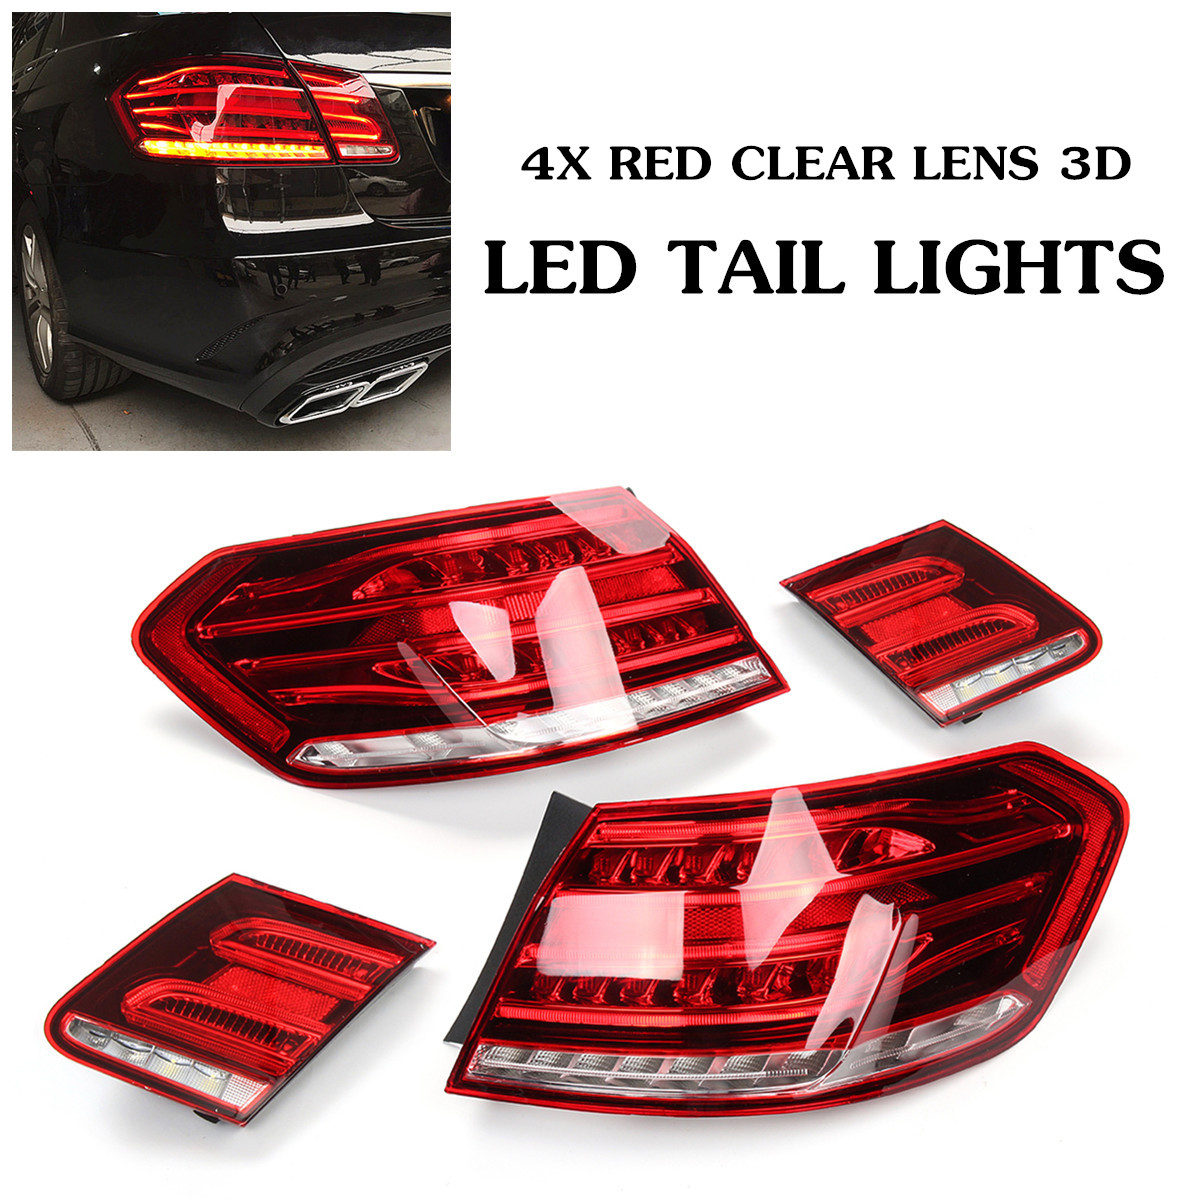 For 13-15 Benz-E Class W212 E200 E240 E260 E280 E300 Rear Signal LED Tail Lights ABS 49x19cm Direct Replacement Light Assembly dxz 2pcs car led door logo projector ghost shadow light for mercedes benz w212 w166 w176 e200 e300 e260 e class amg